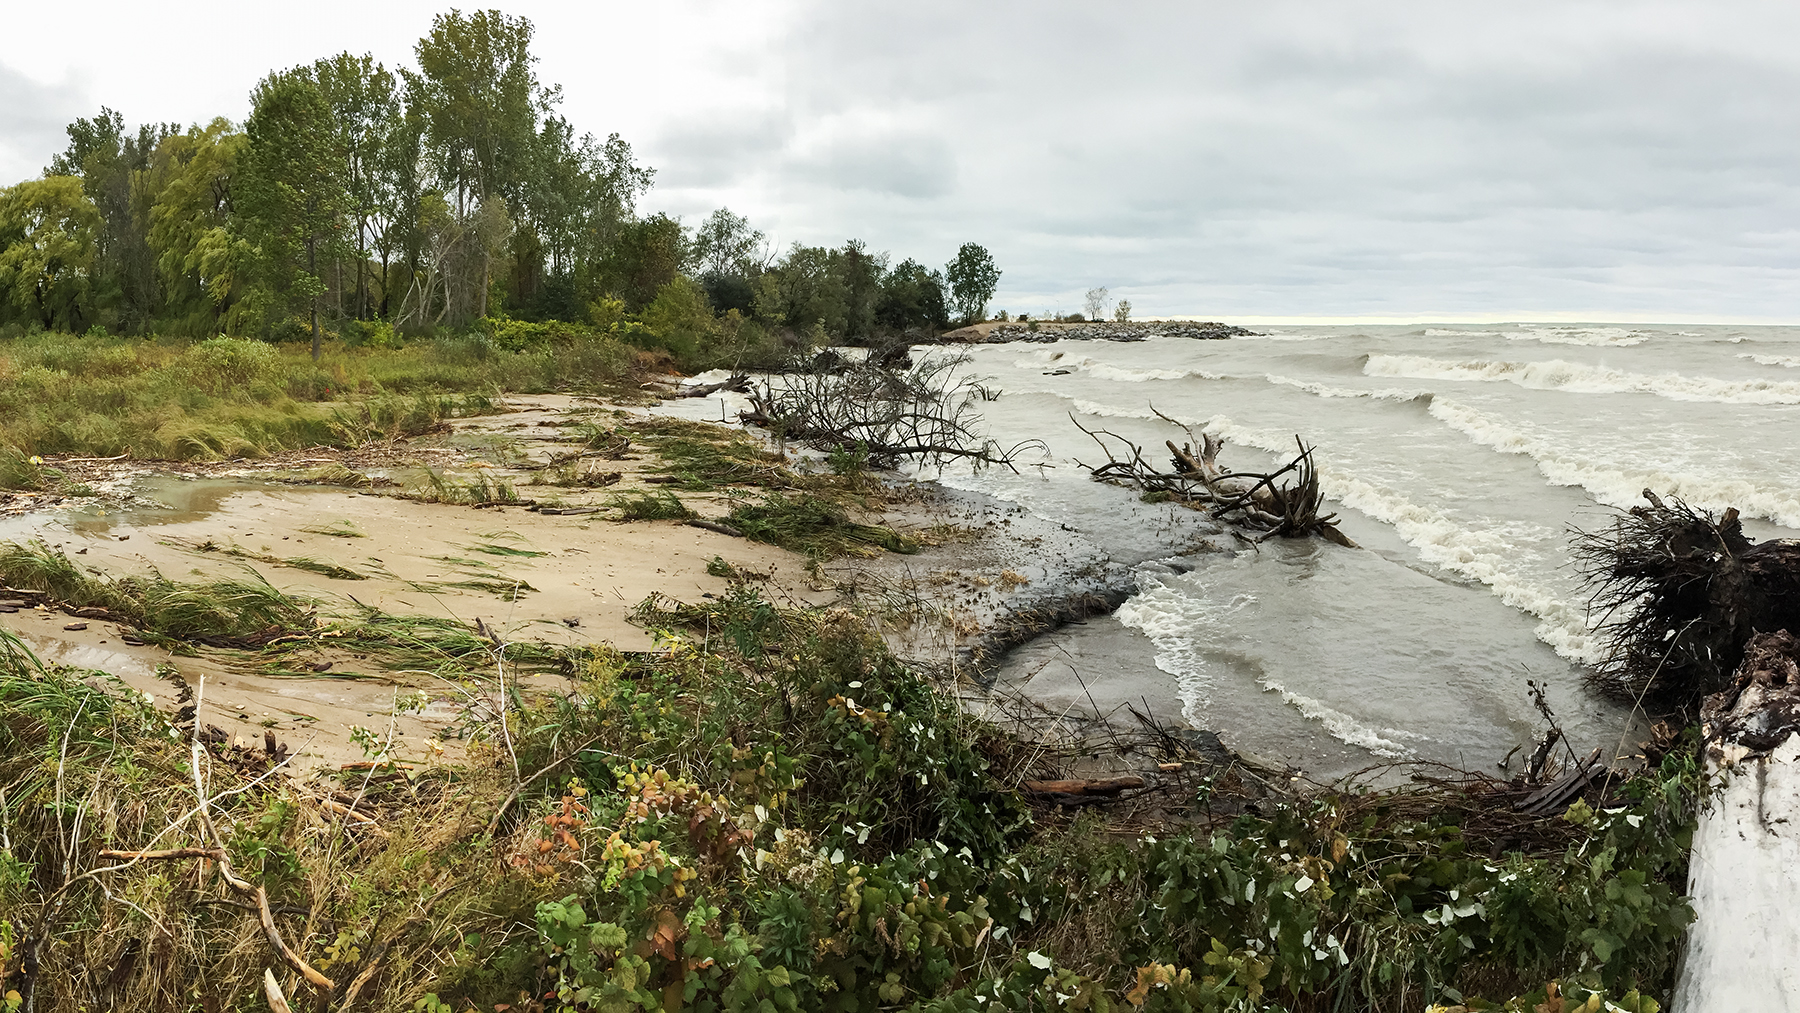 section of shoreline of Lake Michigan at Illinois Beach State Park shows erosion from wave action and covering of  beach sand